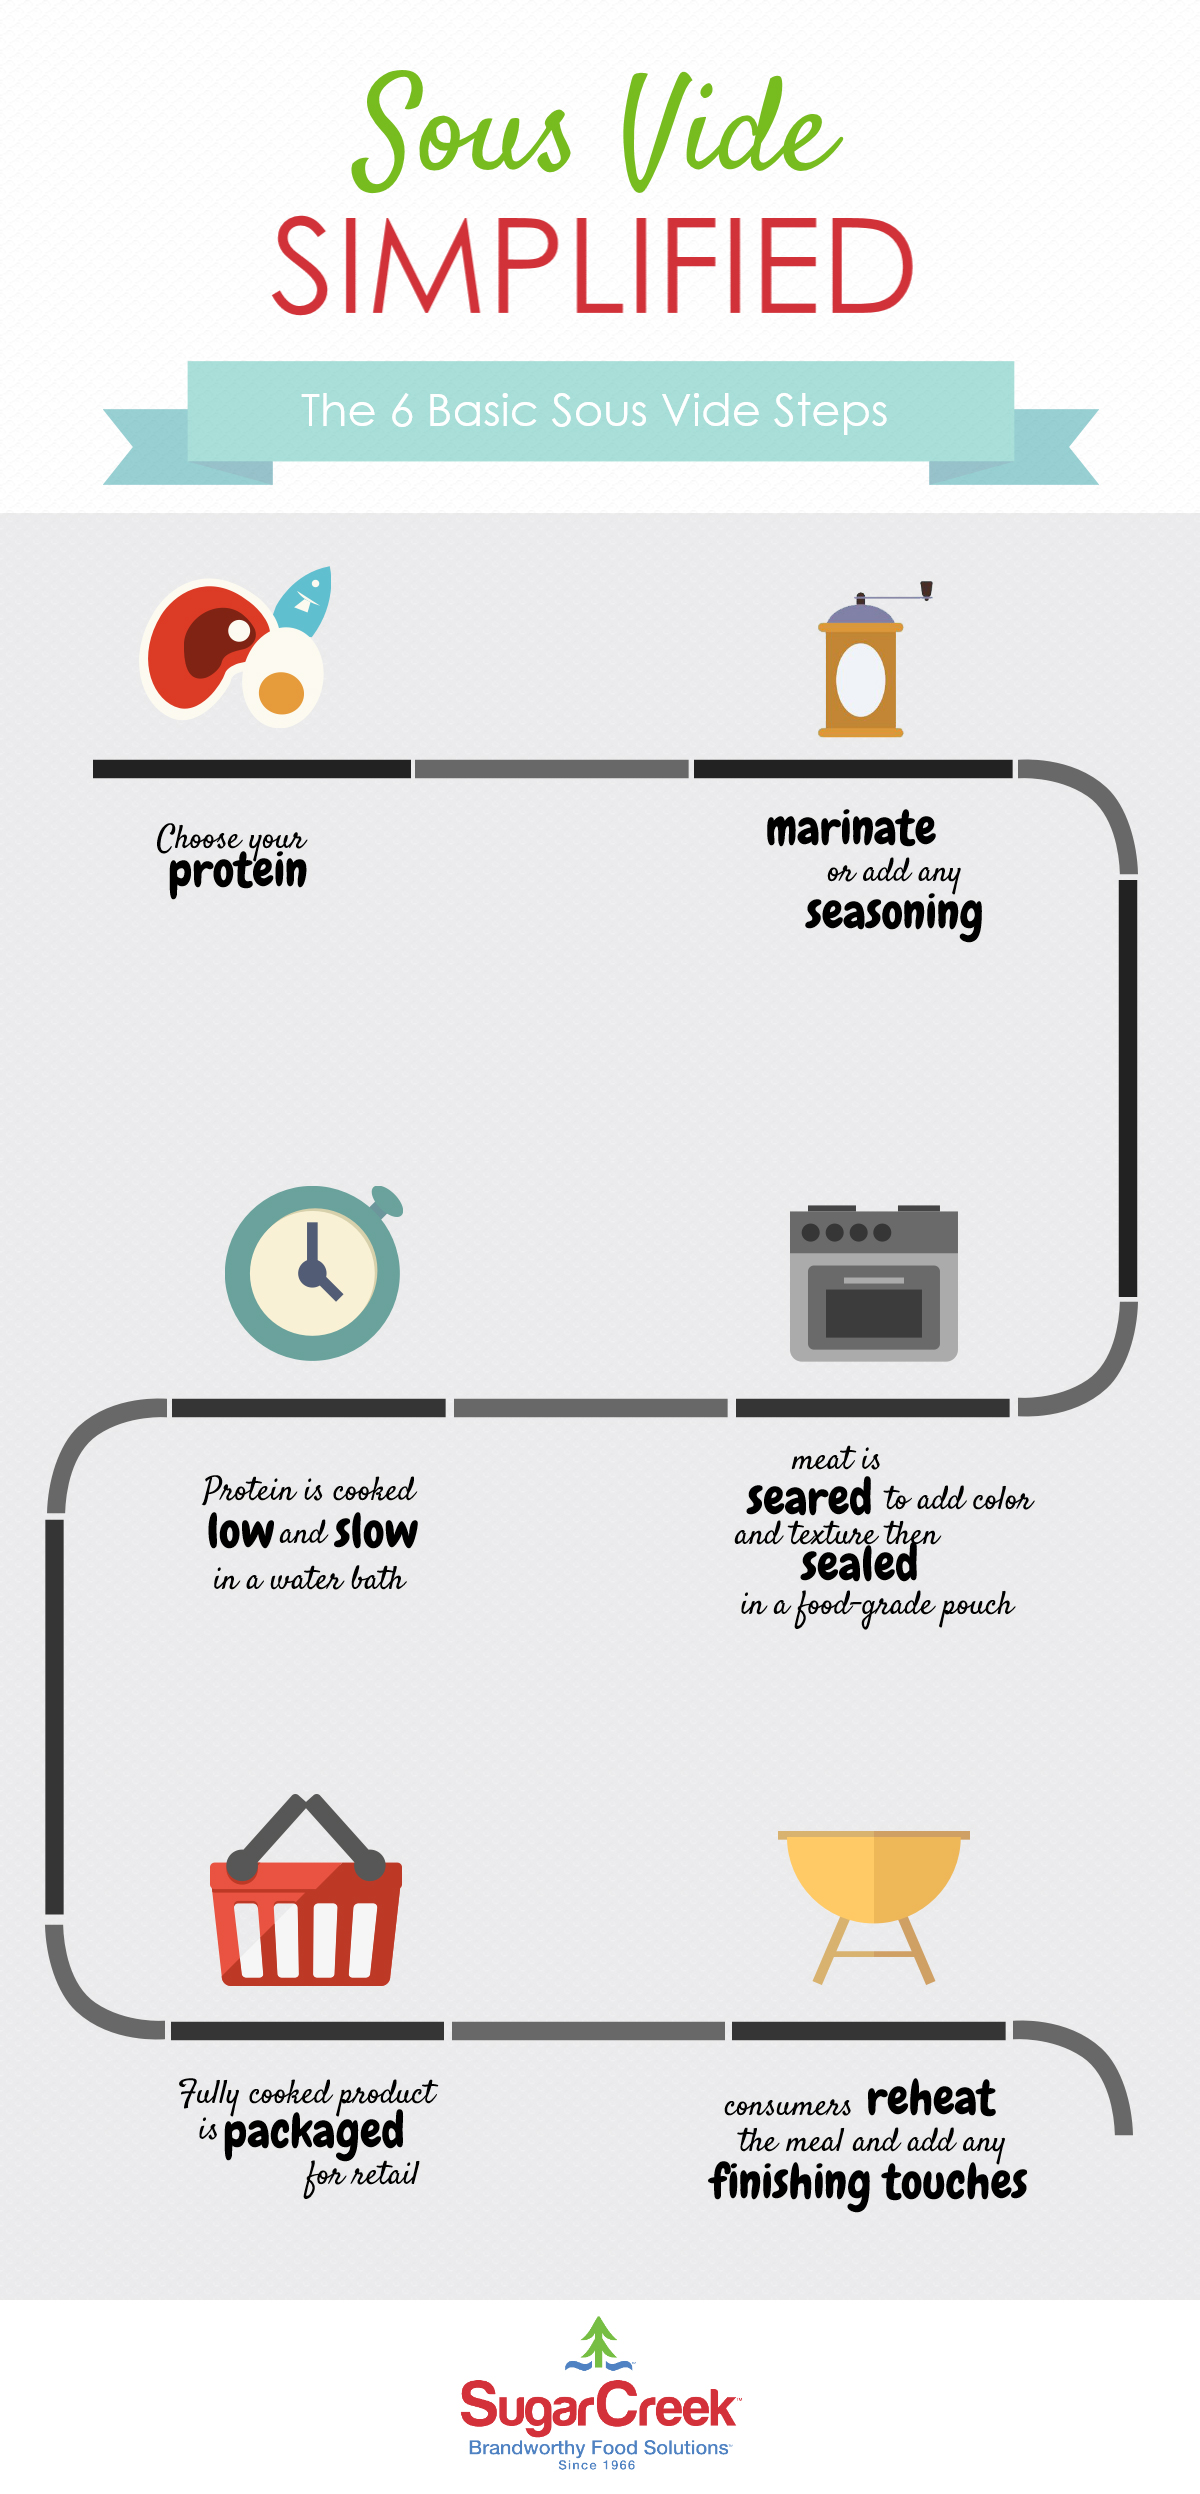 Don't Know How Sous Vide Works? Check Out Our Infographic.